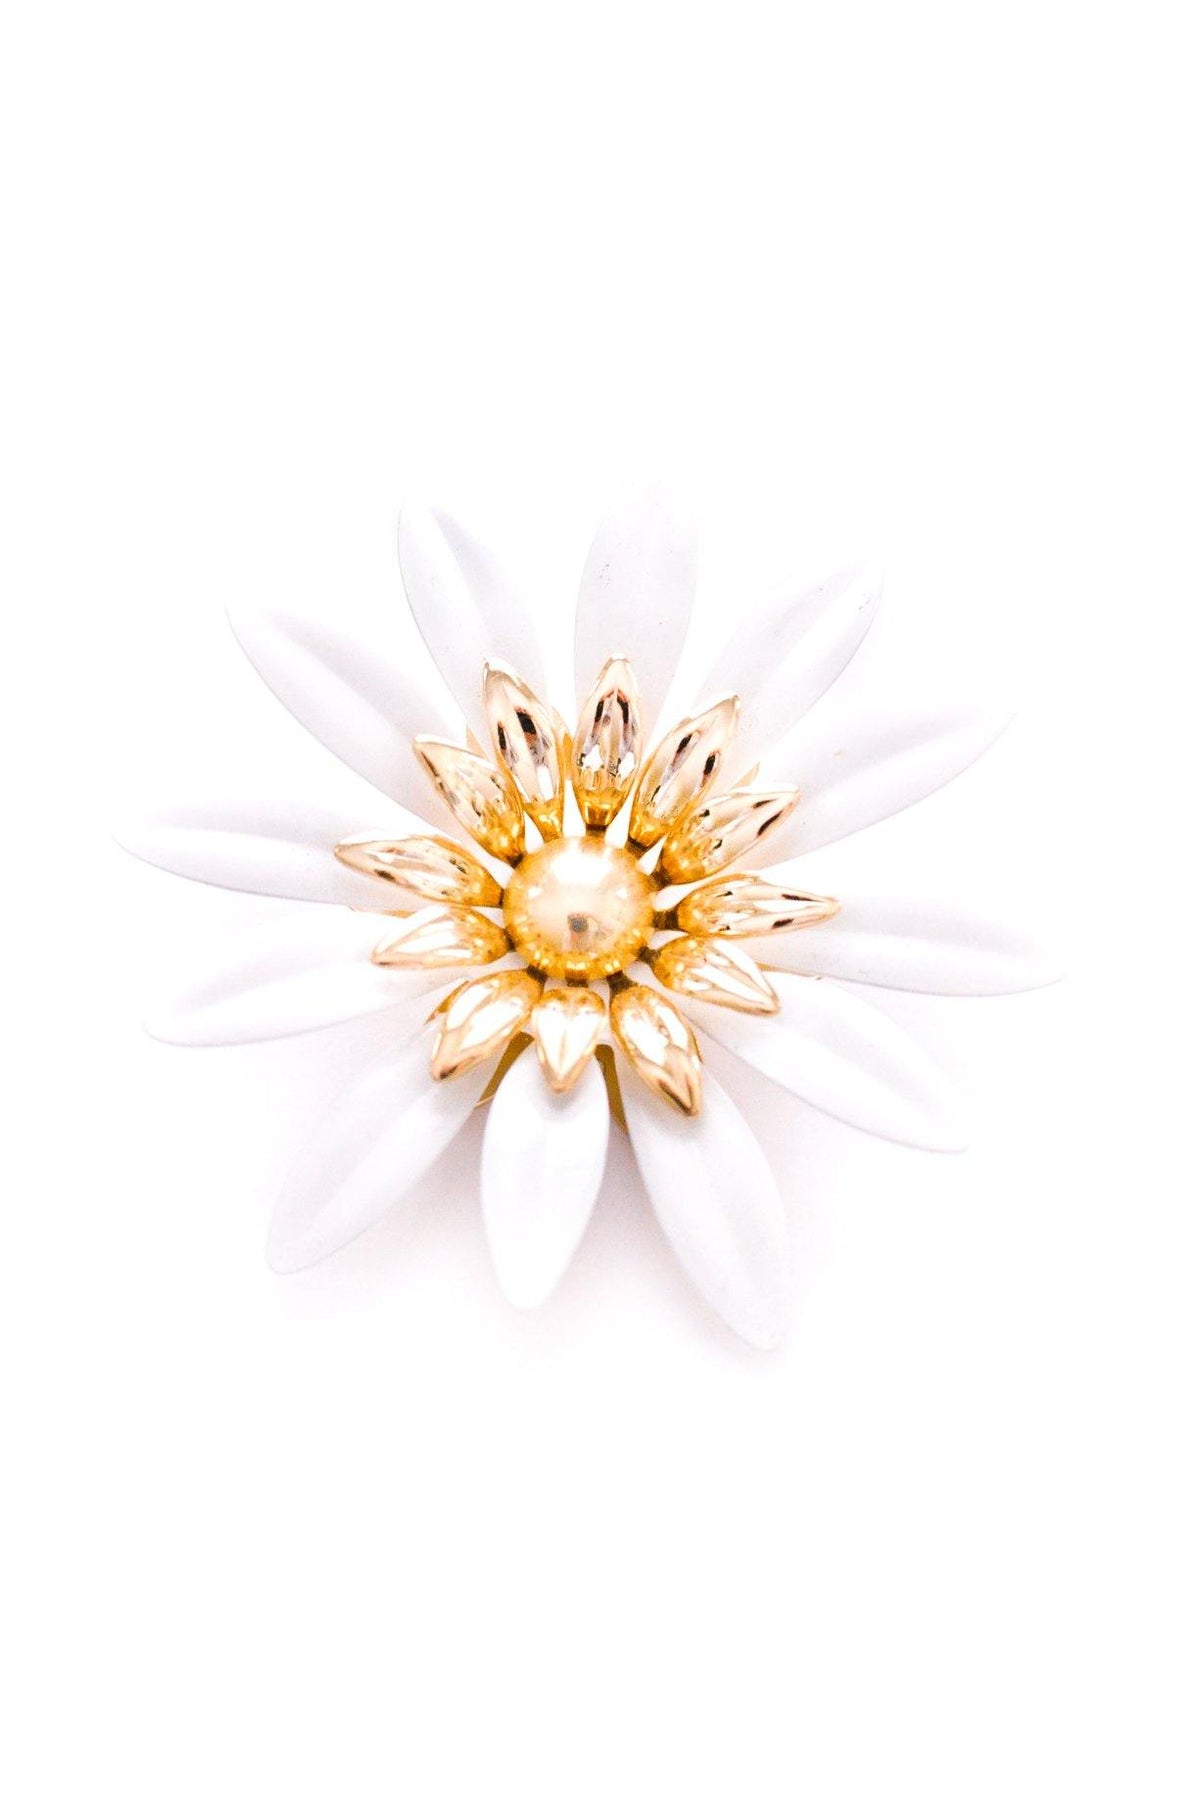 Vintage Sarah Coventry white enamel brooch from Sweet & Spark.